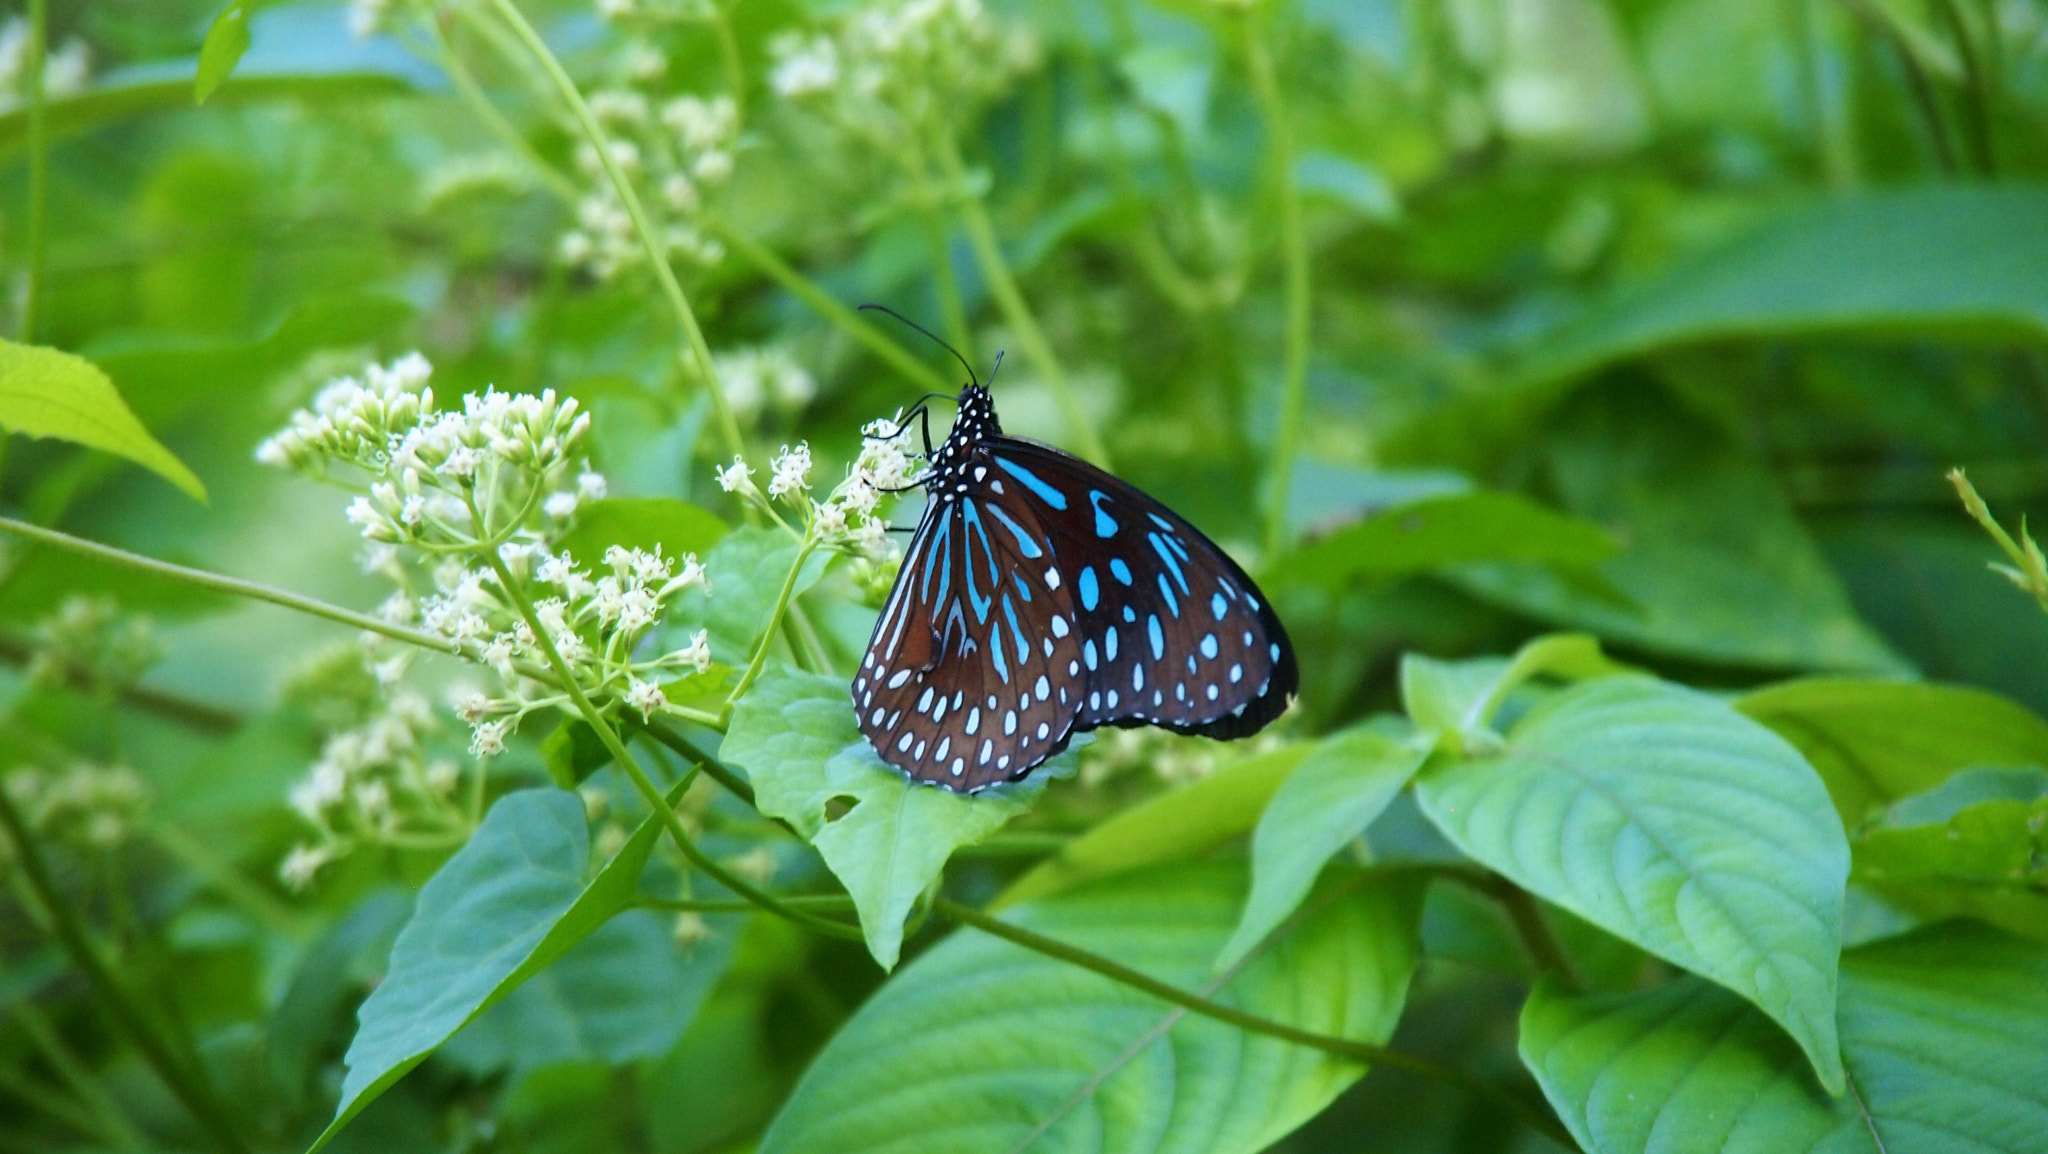 Photograph Black and Blue Butterfly by Christian Bauer on 500px